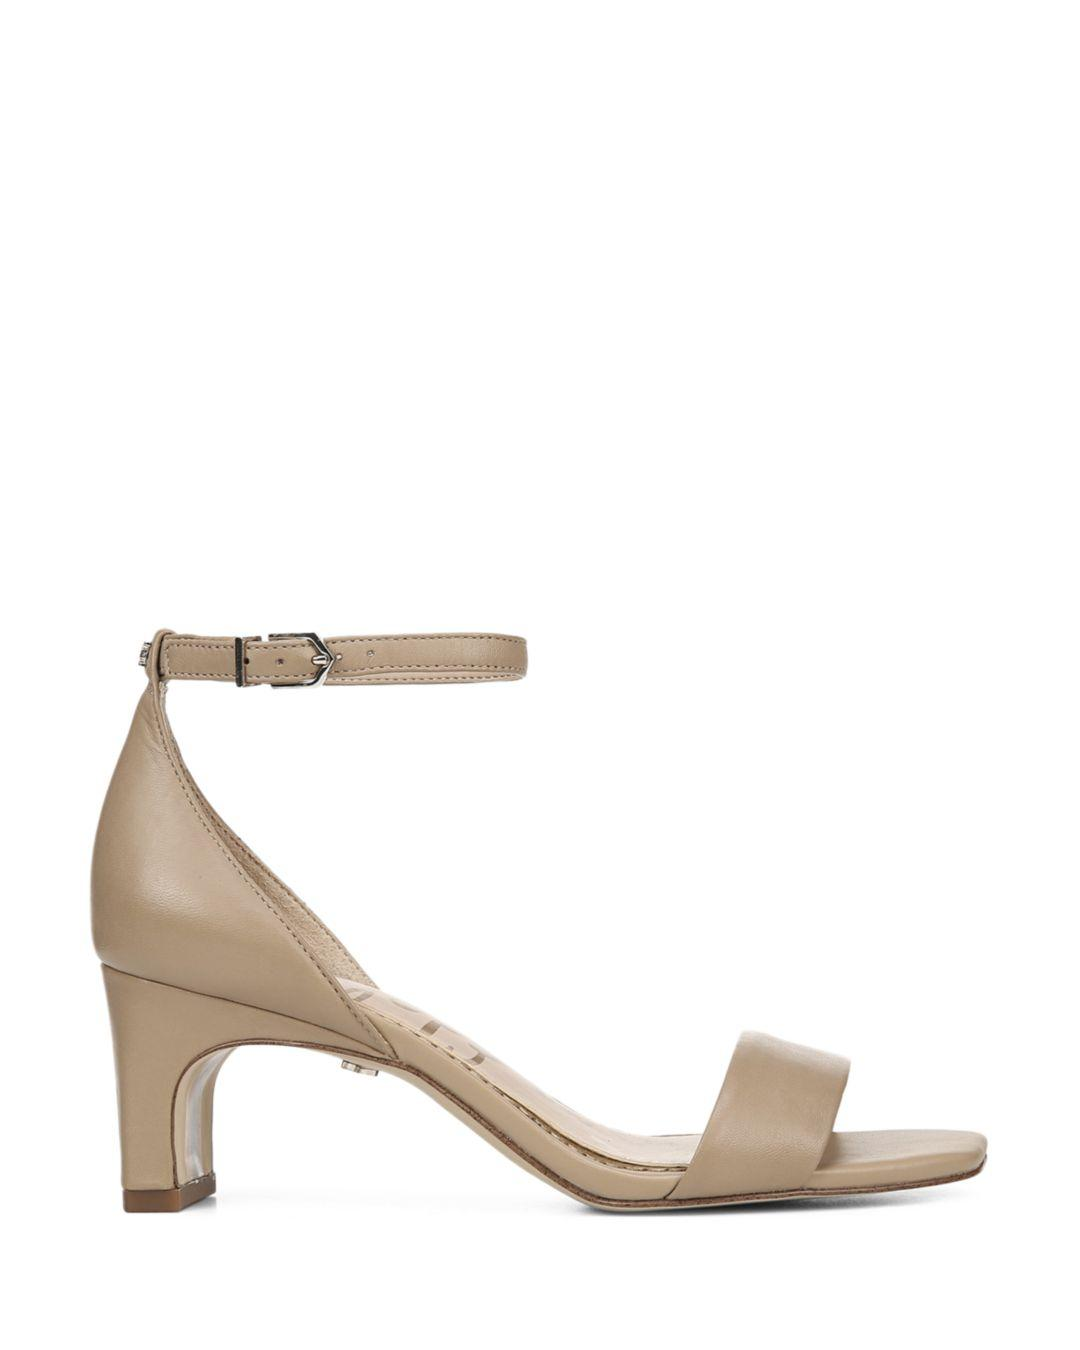 d24b1f115 Lyst - Sam Edelman Women s Holmes Block Heel Sandals in Natural